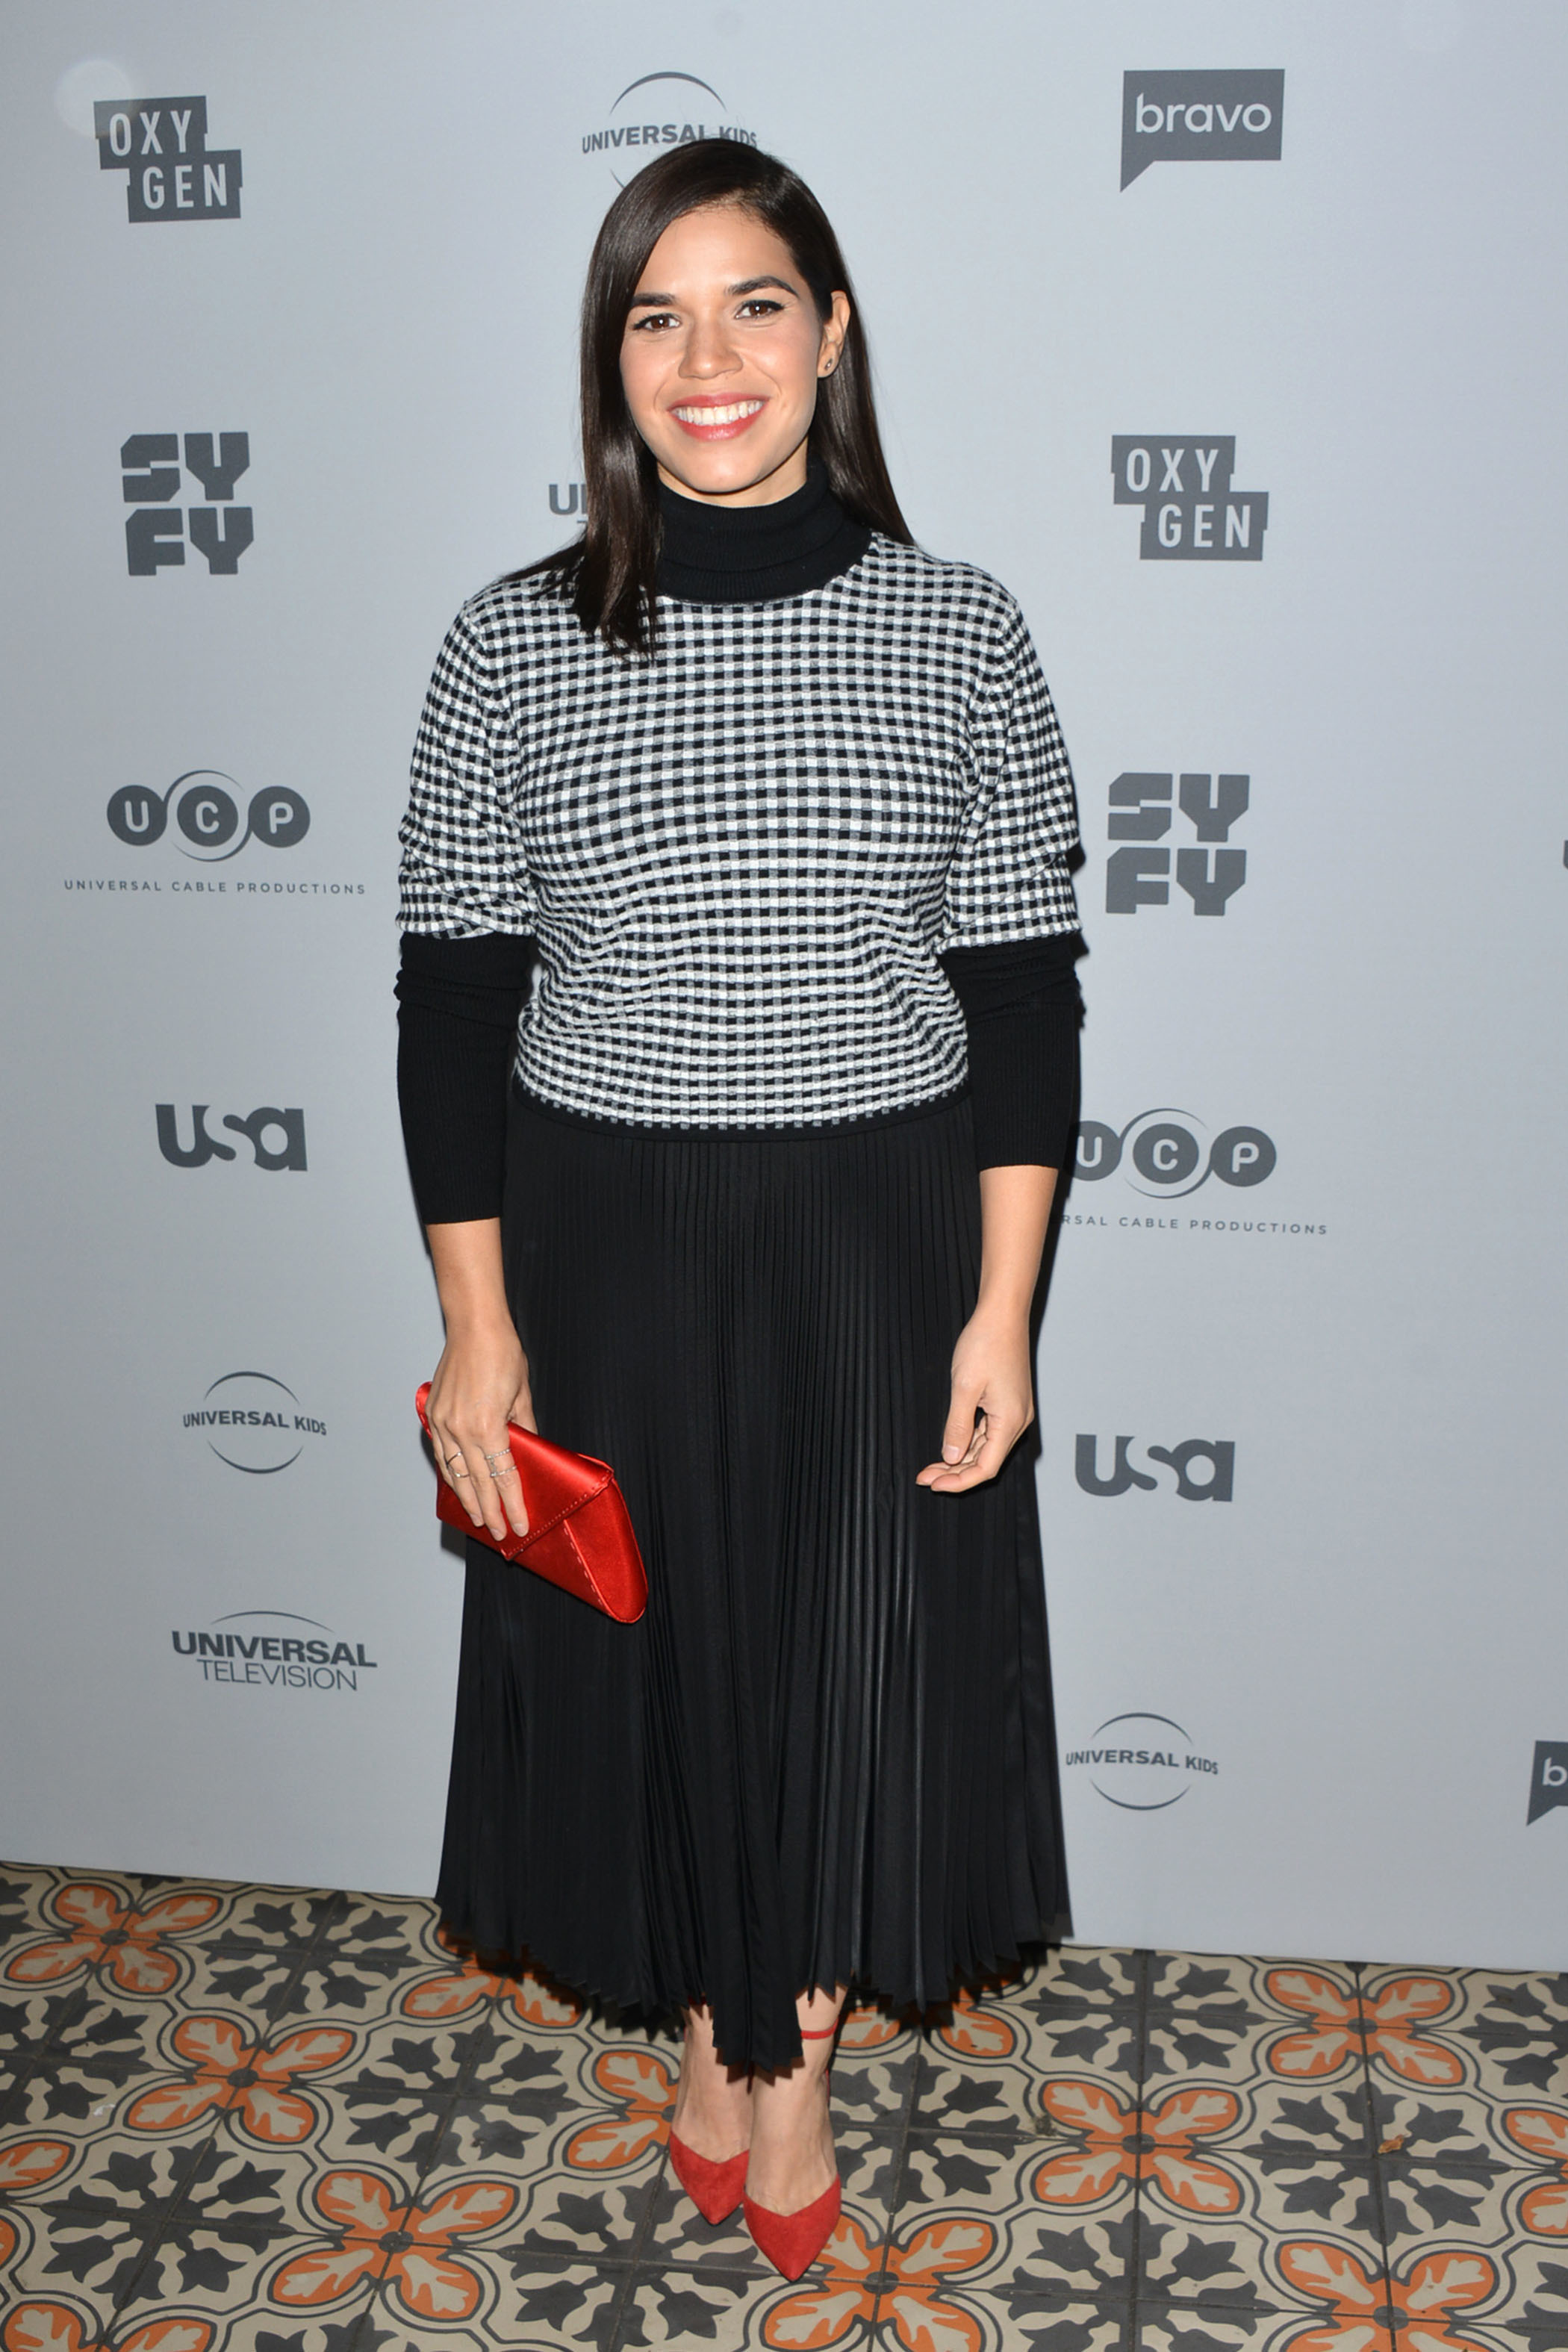 America Ferrera attends the NBCUniversal Holiday Kick Off Event in Los Angeles on Nov. 13, 2017.